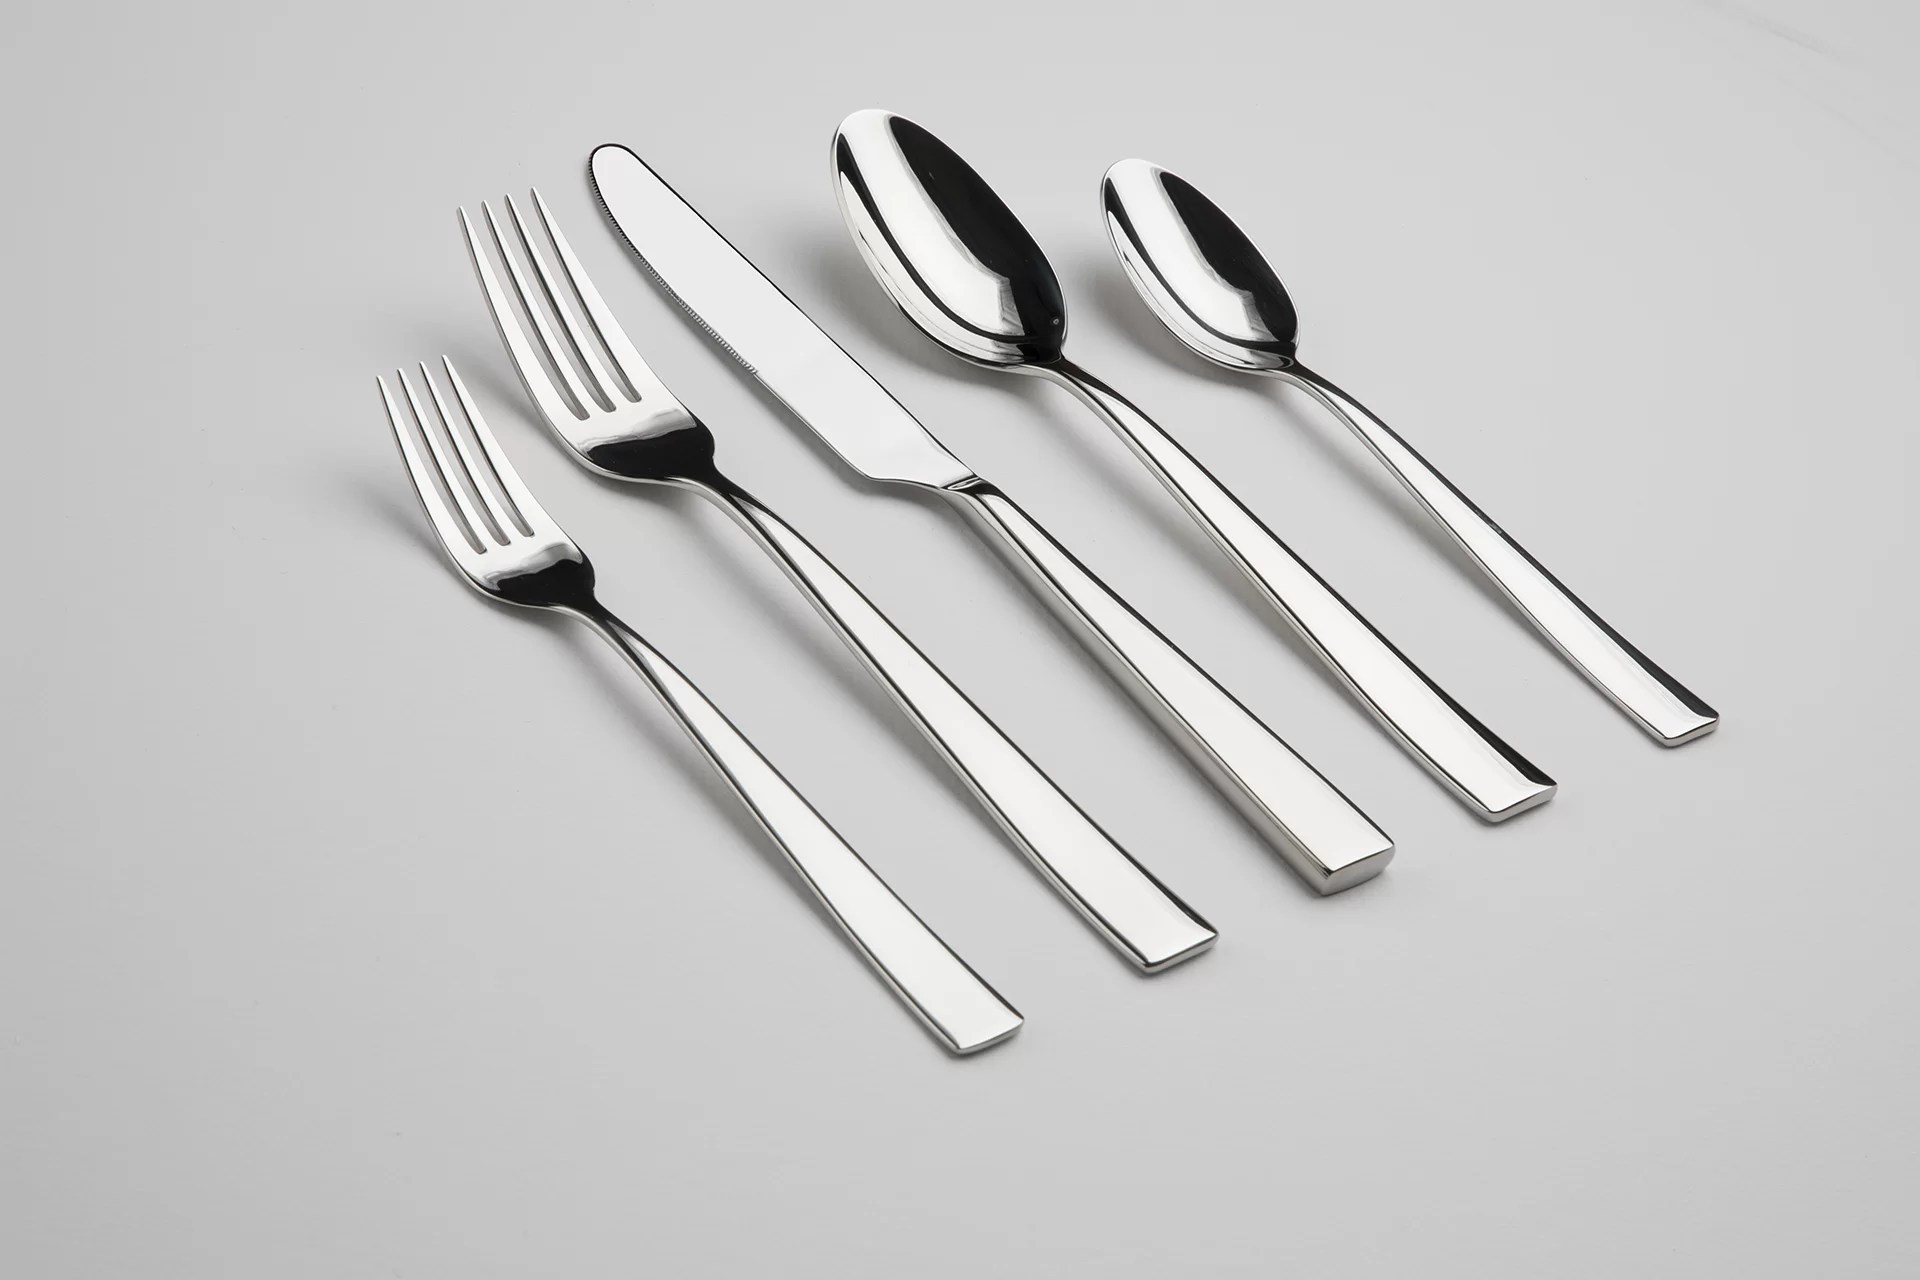 Used Flatware For Sale Resto 60 Piece 18 10 Stainless Steel Flatware Set Service For 12